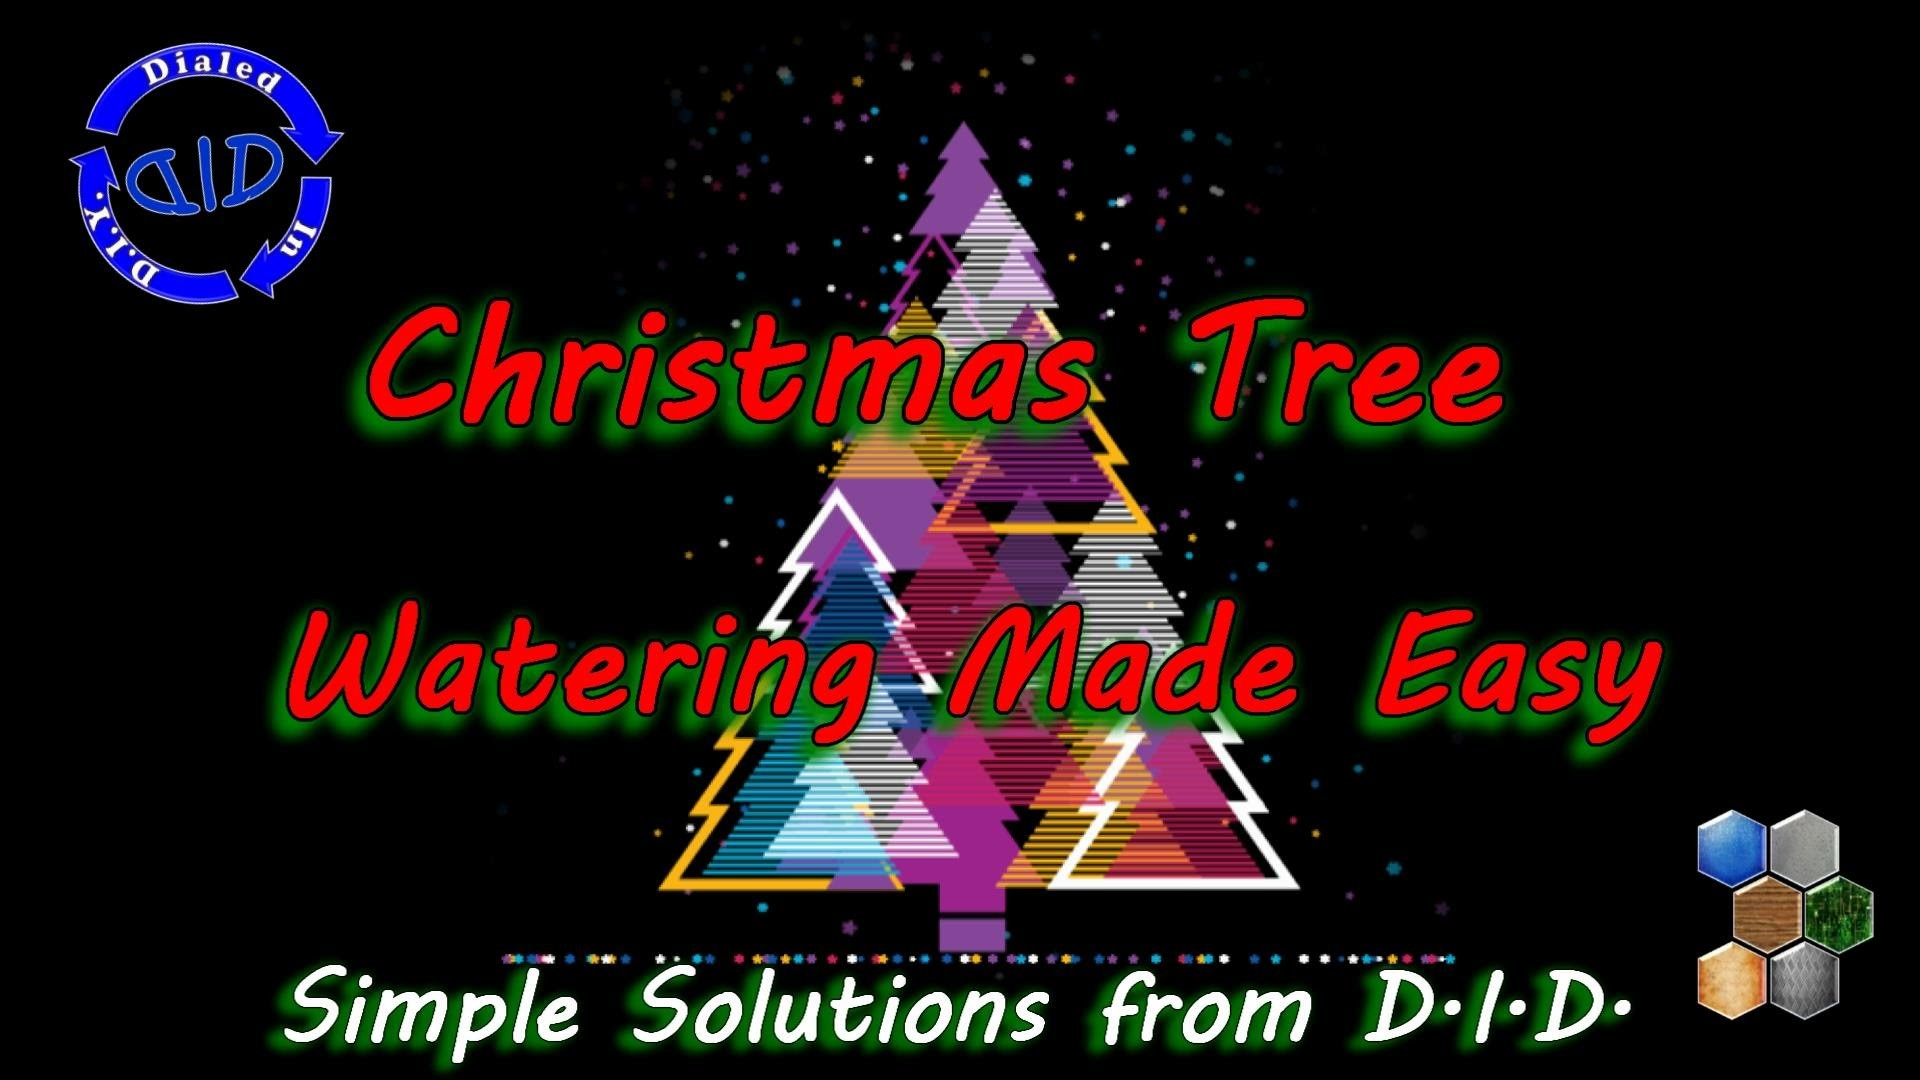 Christmas Tree Watering Made Easy  - a DIY way